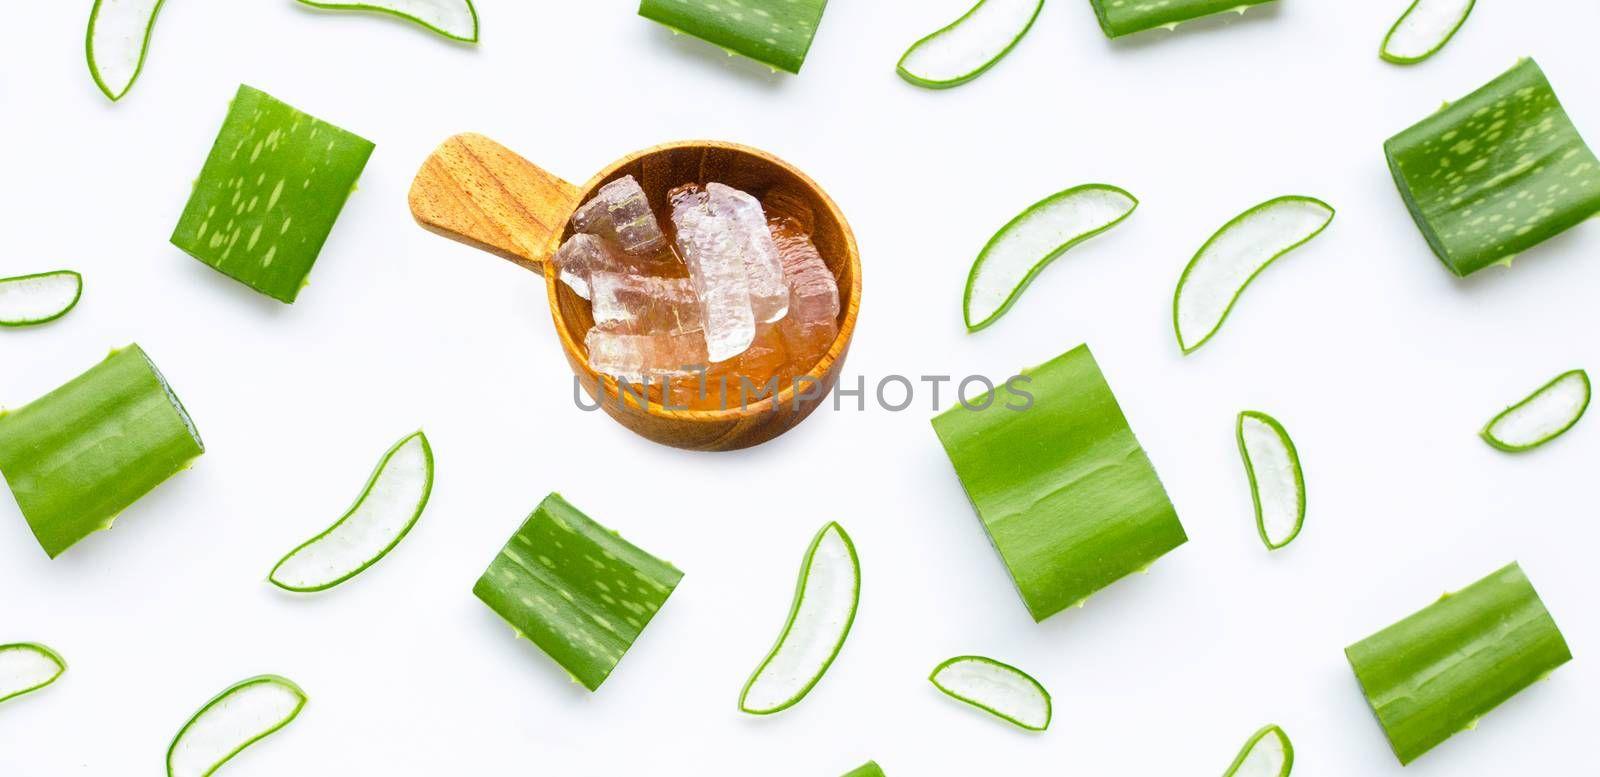 Aloe vera is a popular medicinal plant for health and beauty, on a white background.